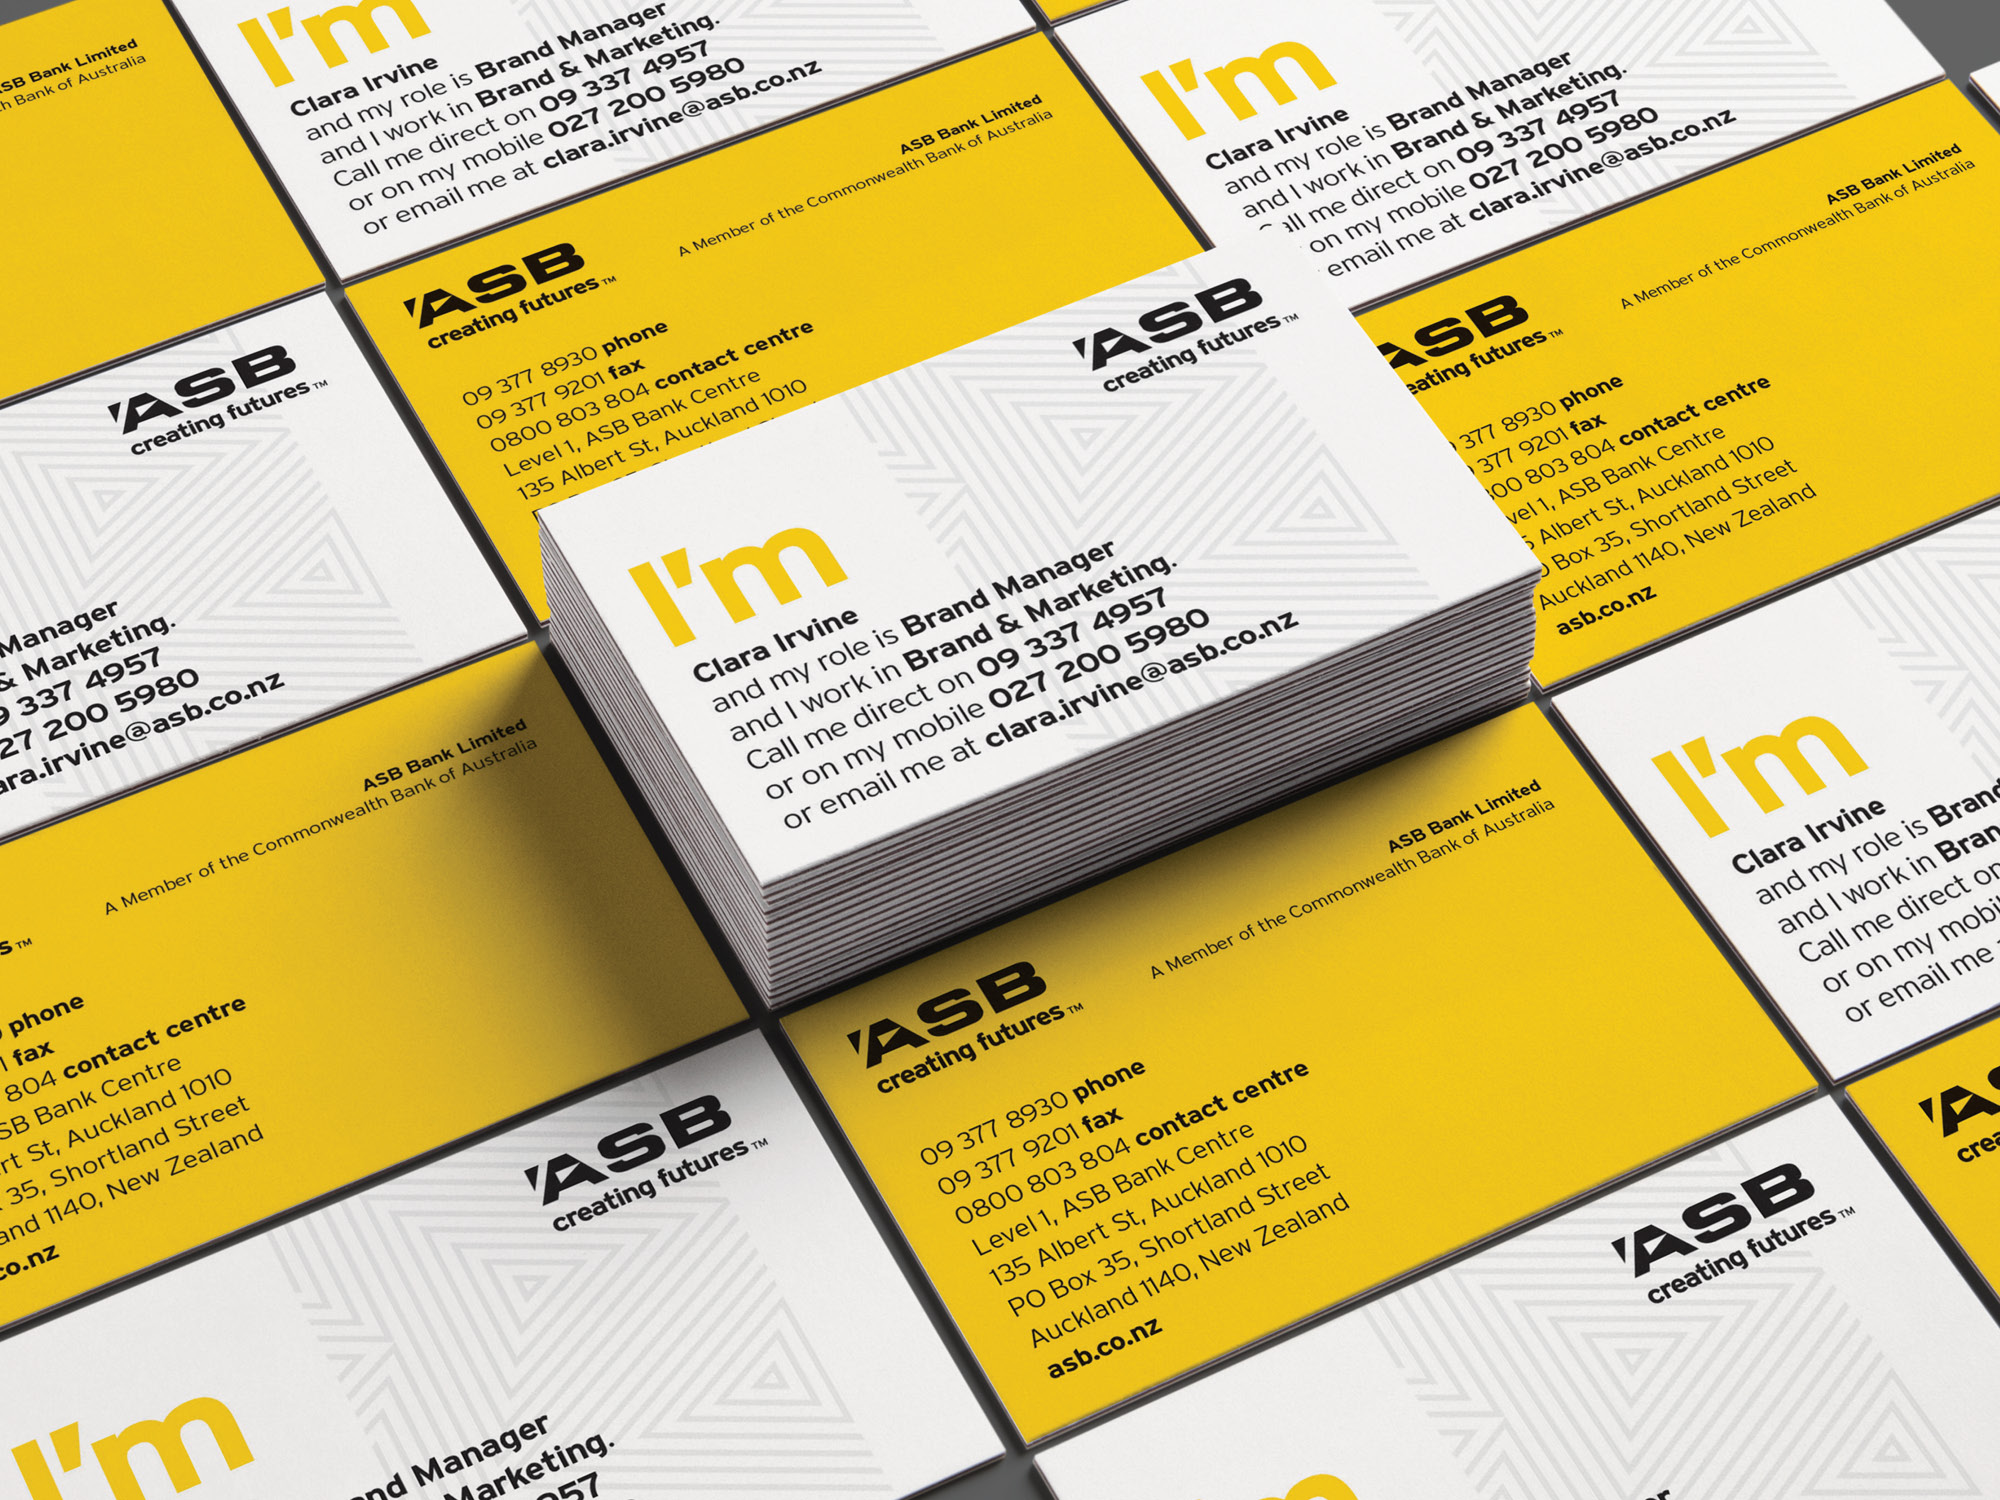 onfire design asb bank branding collateral graphic design 7